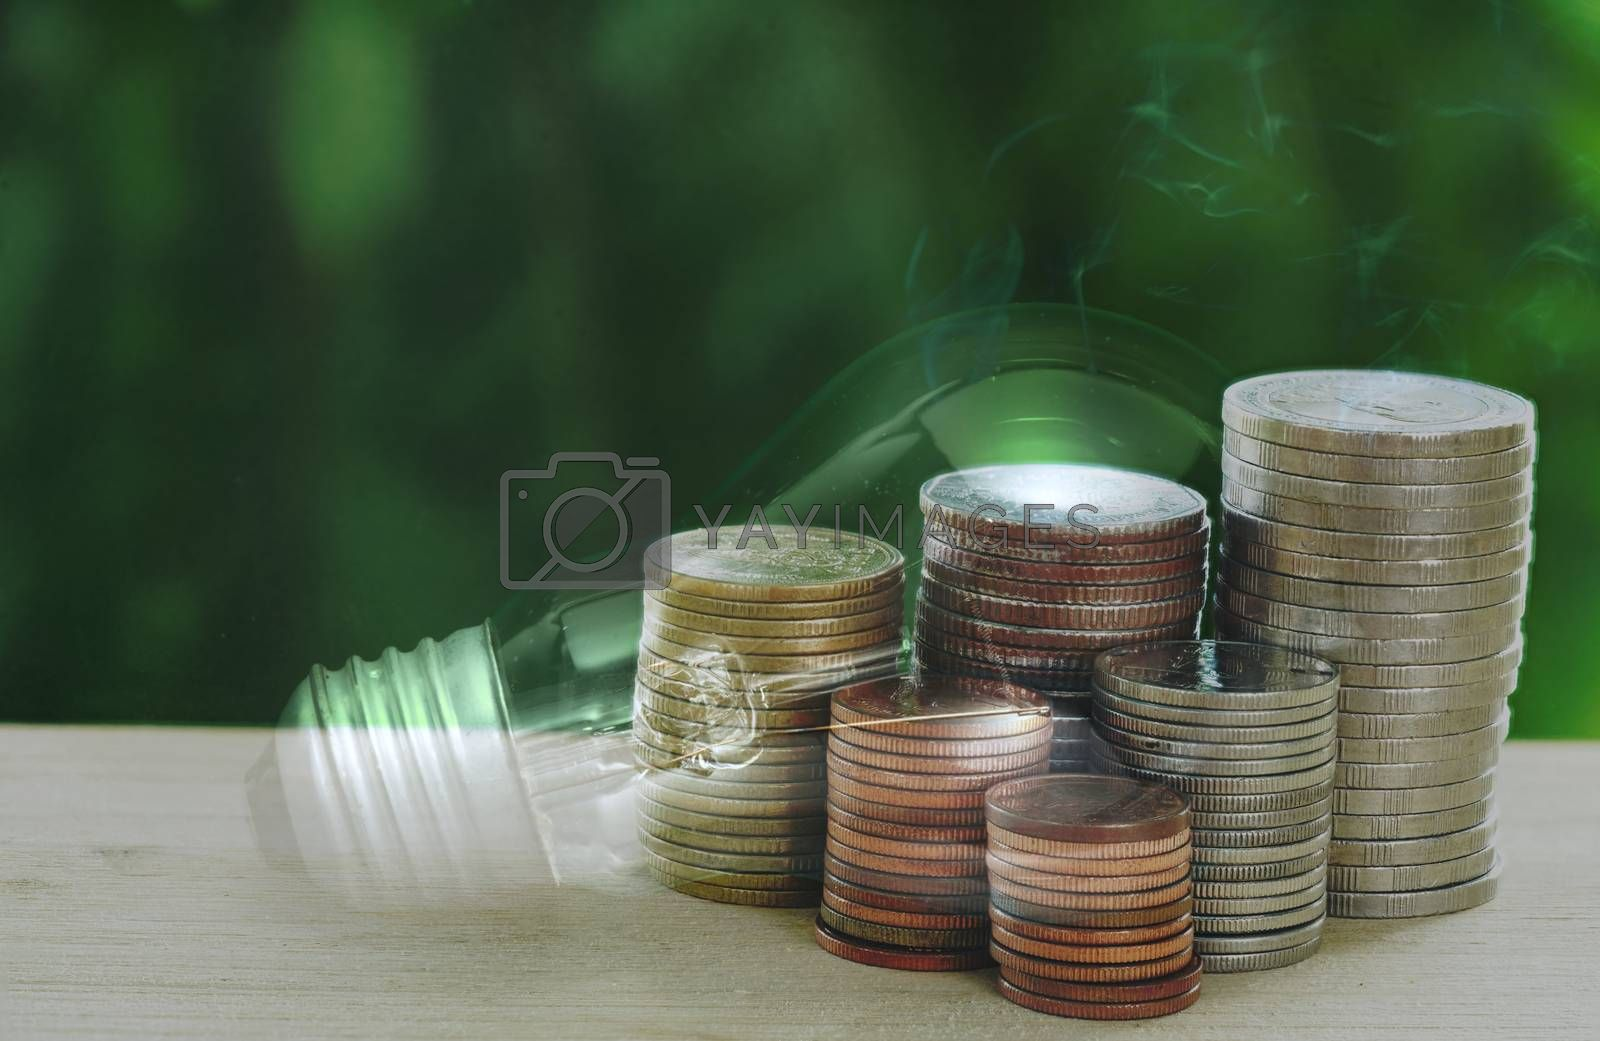 Abstract concept of stacked coins for income, expenses, electricity and utilities, finance and savings.